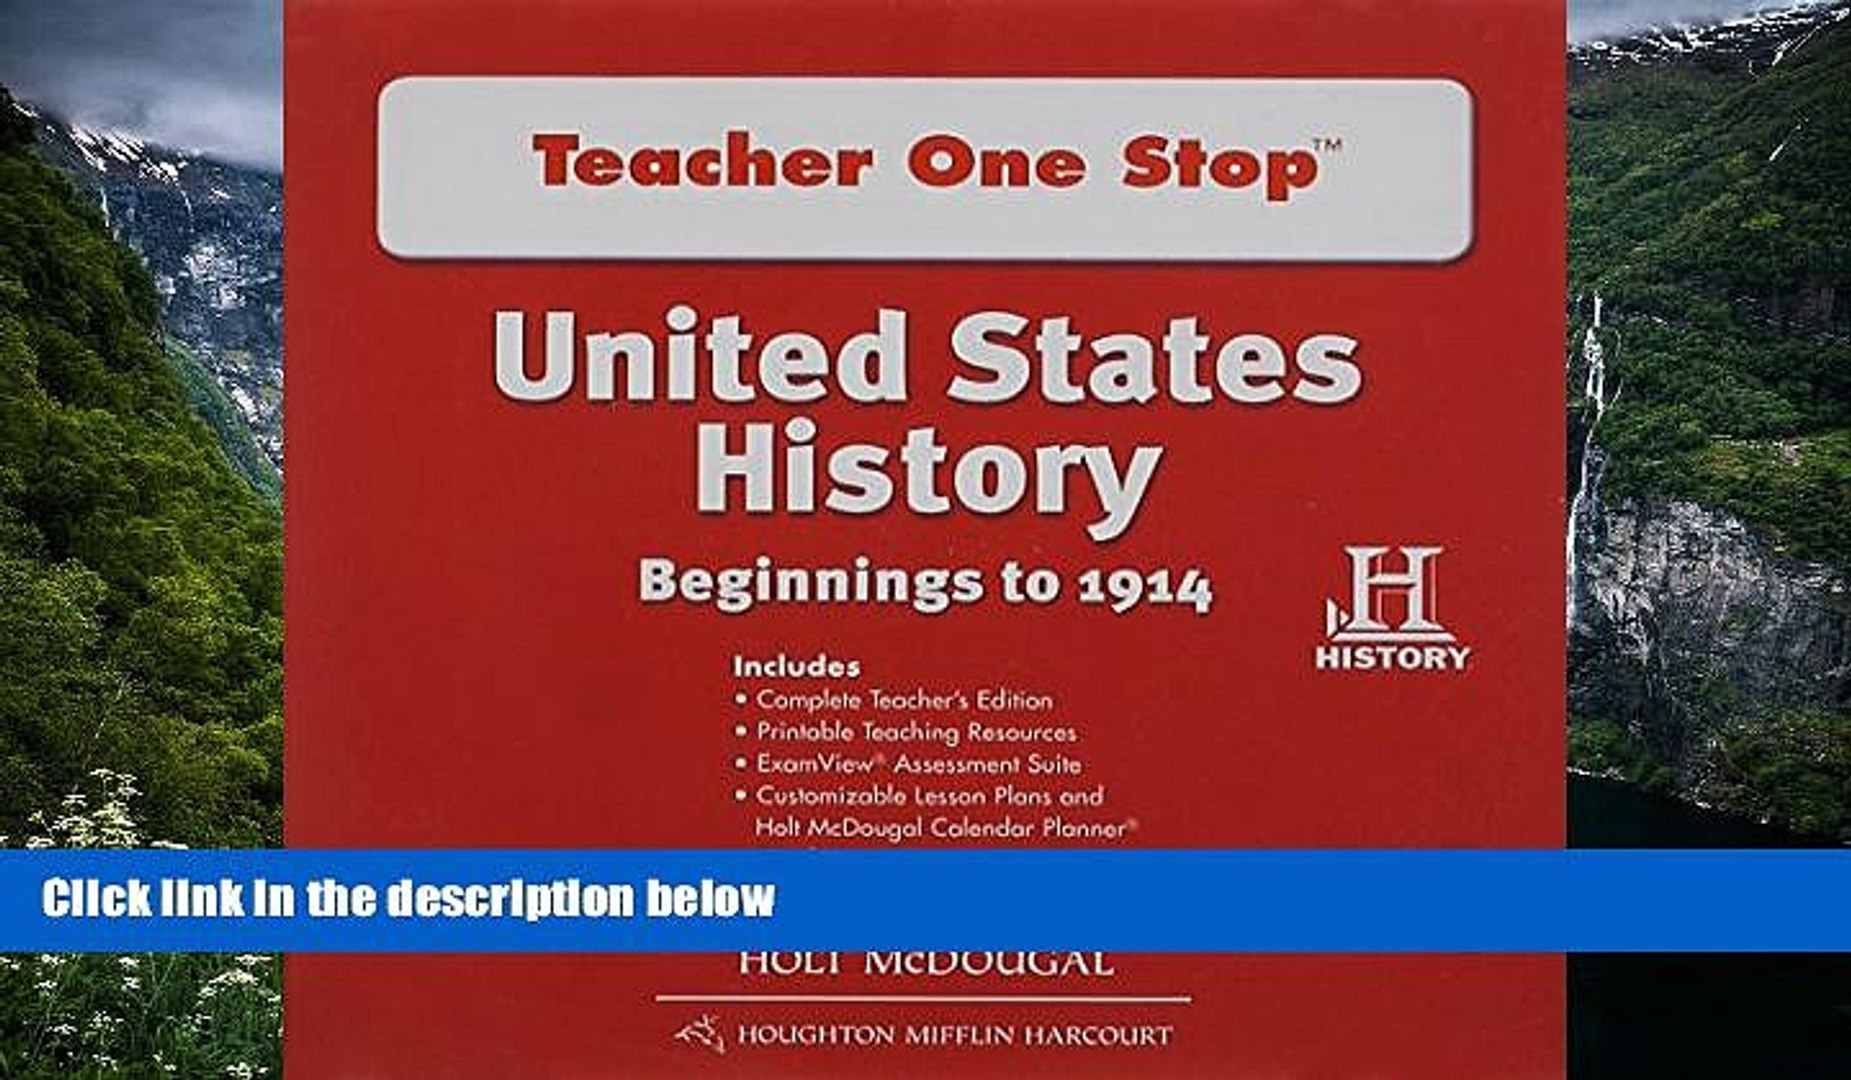 Buy NOW HOLT MCDOUGAL United States History: Teacher One Stop DVD-ROM Beginnings to 1914  Hardcover